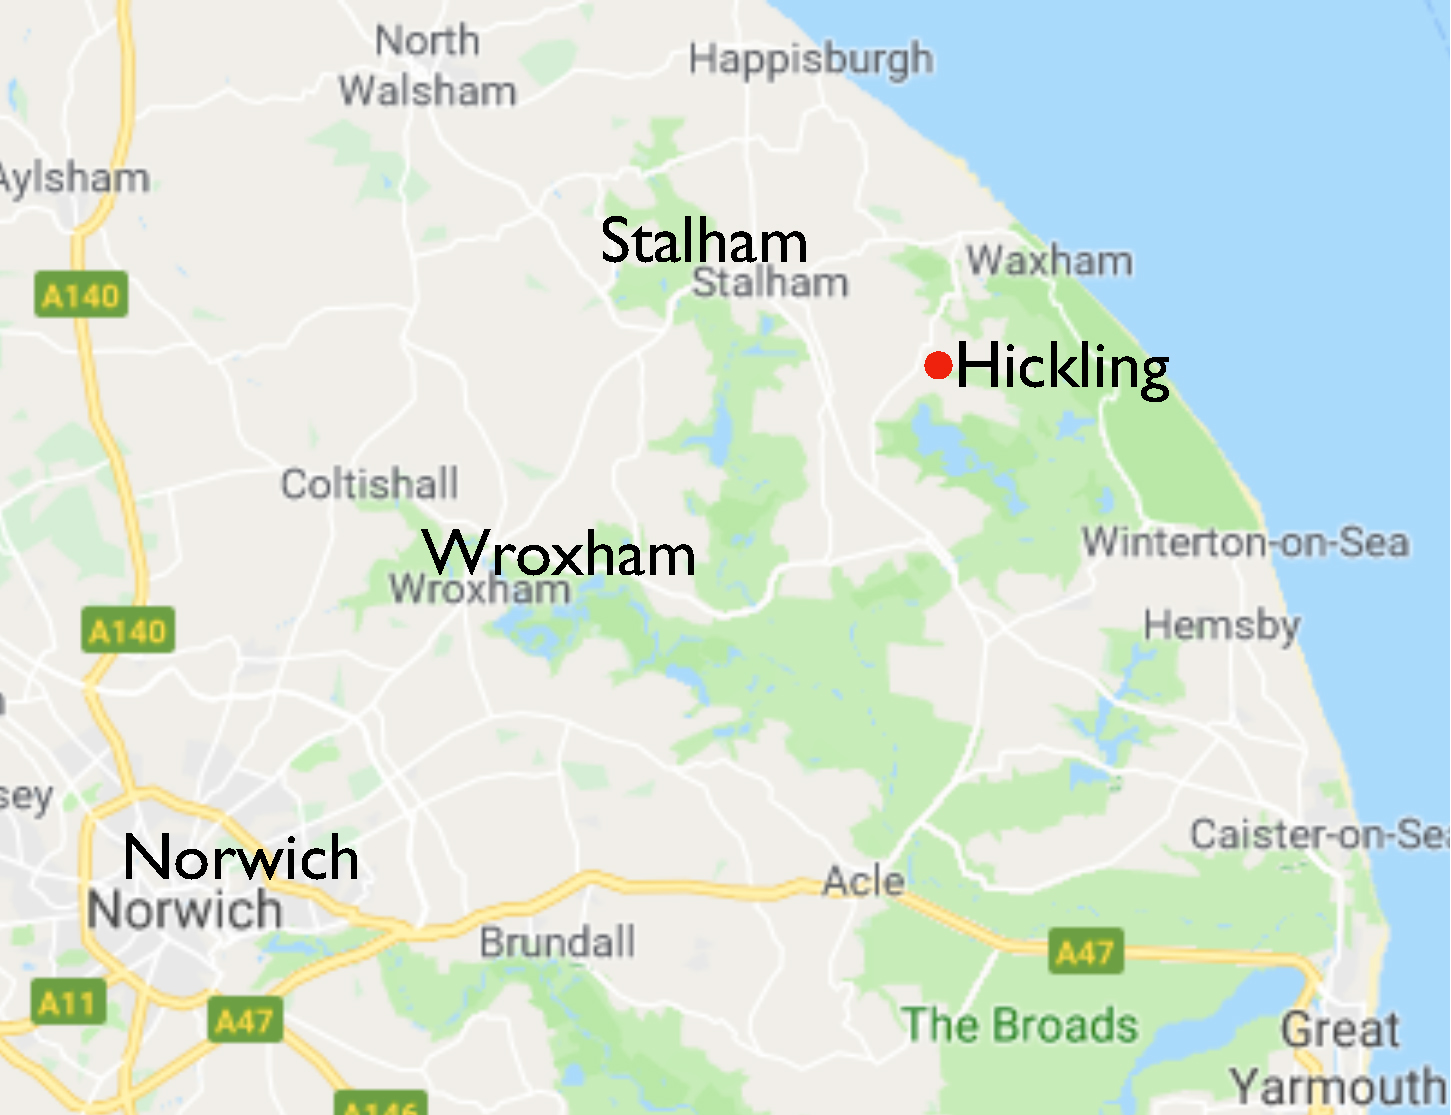 Hickling map